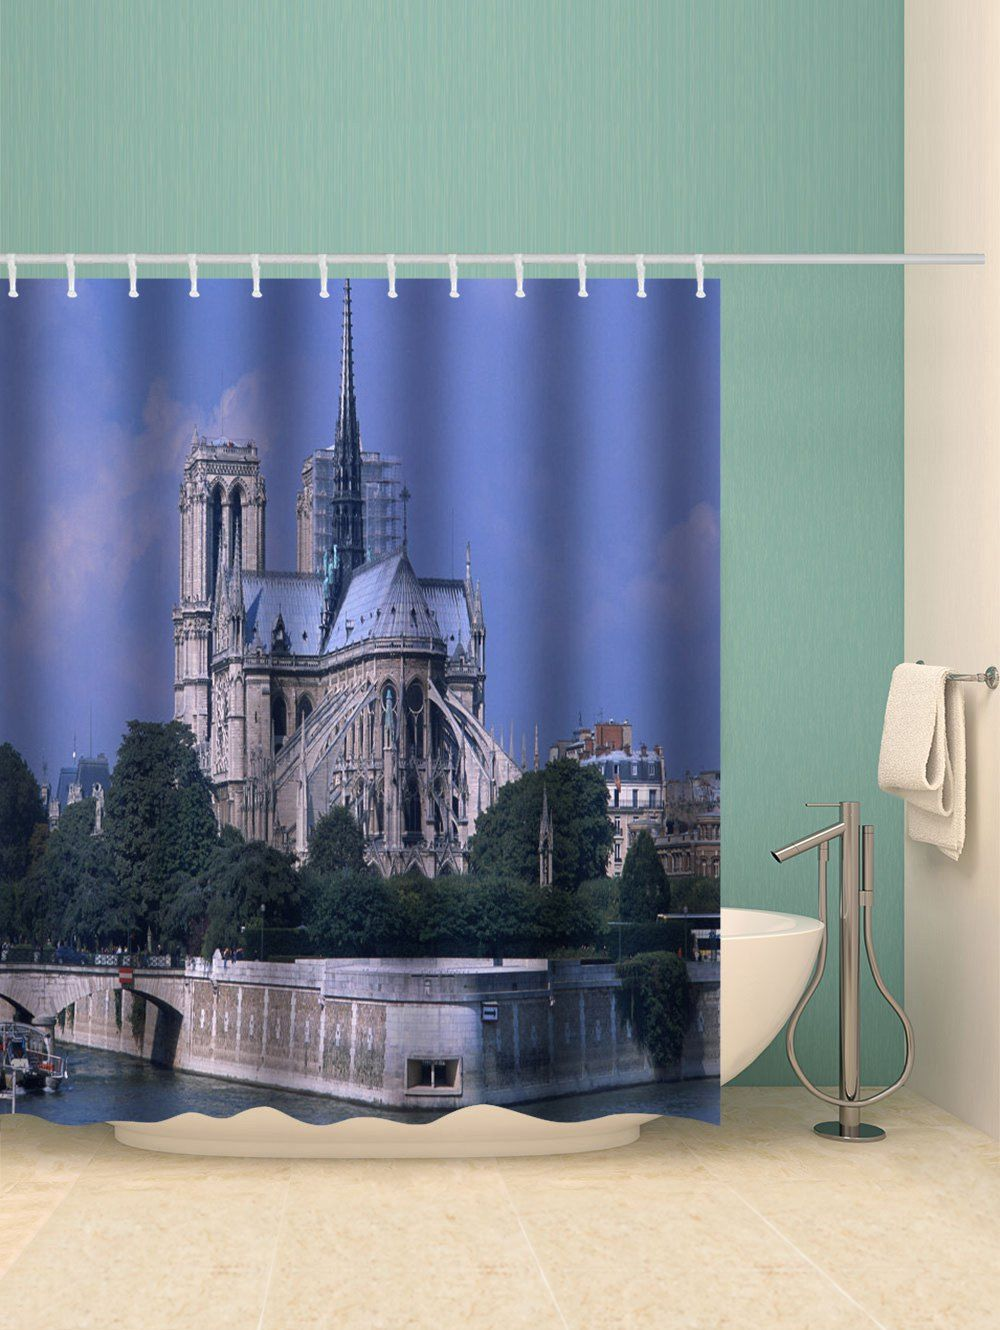 Notre Dame Cathedral Print Waterproof Bathroom Shower Curtain Ad